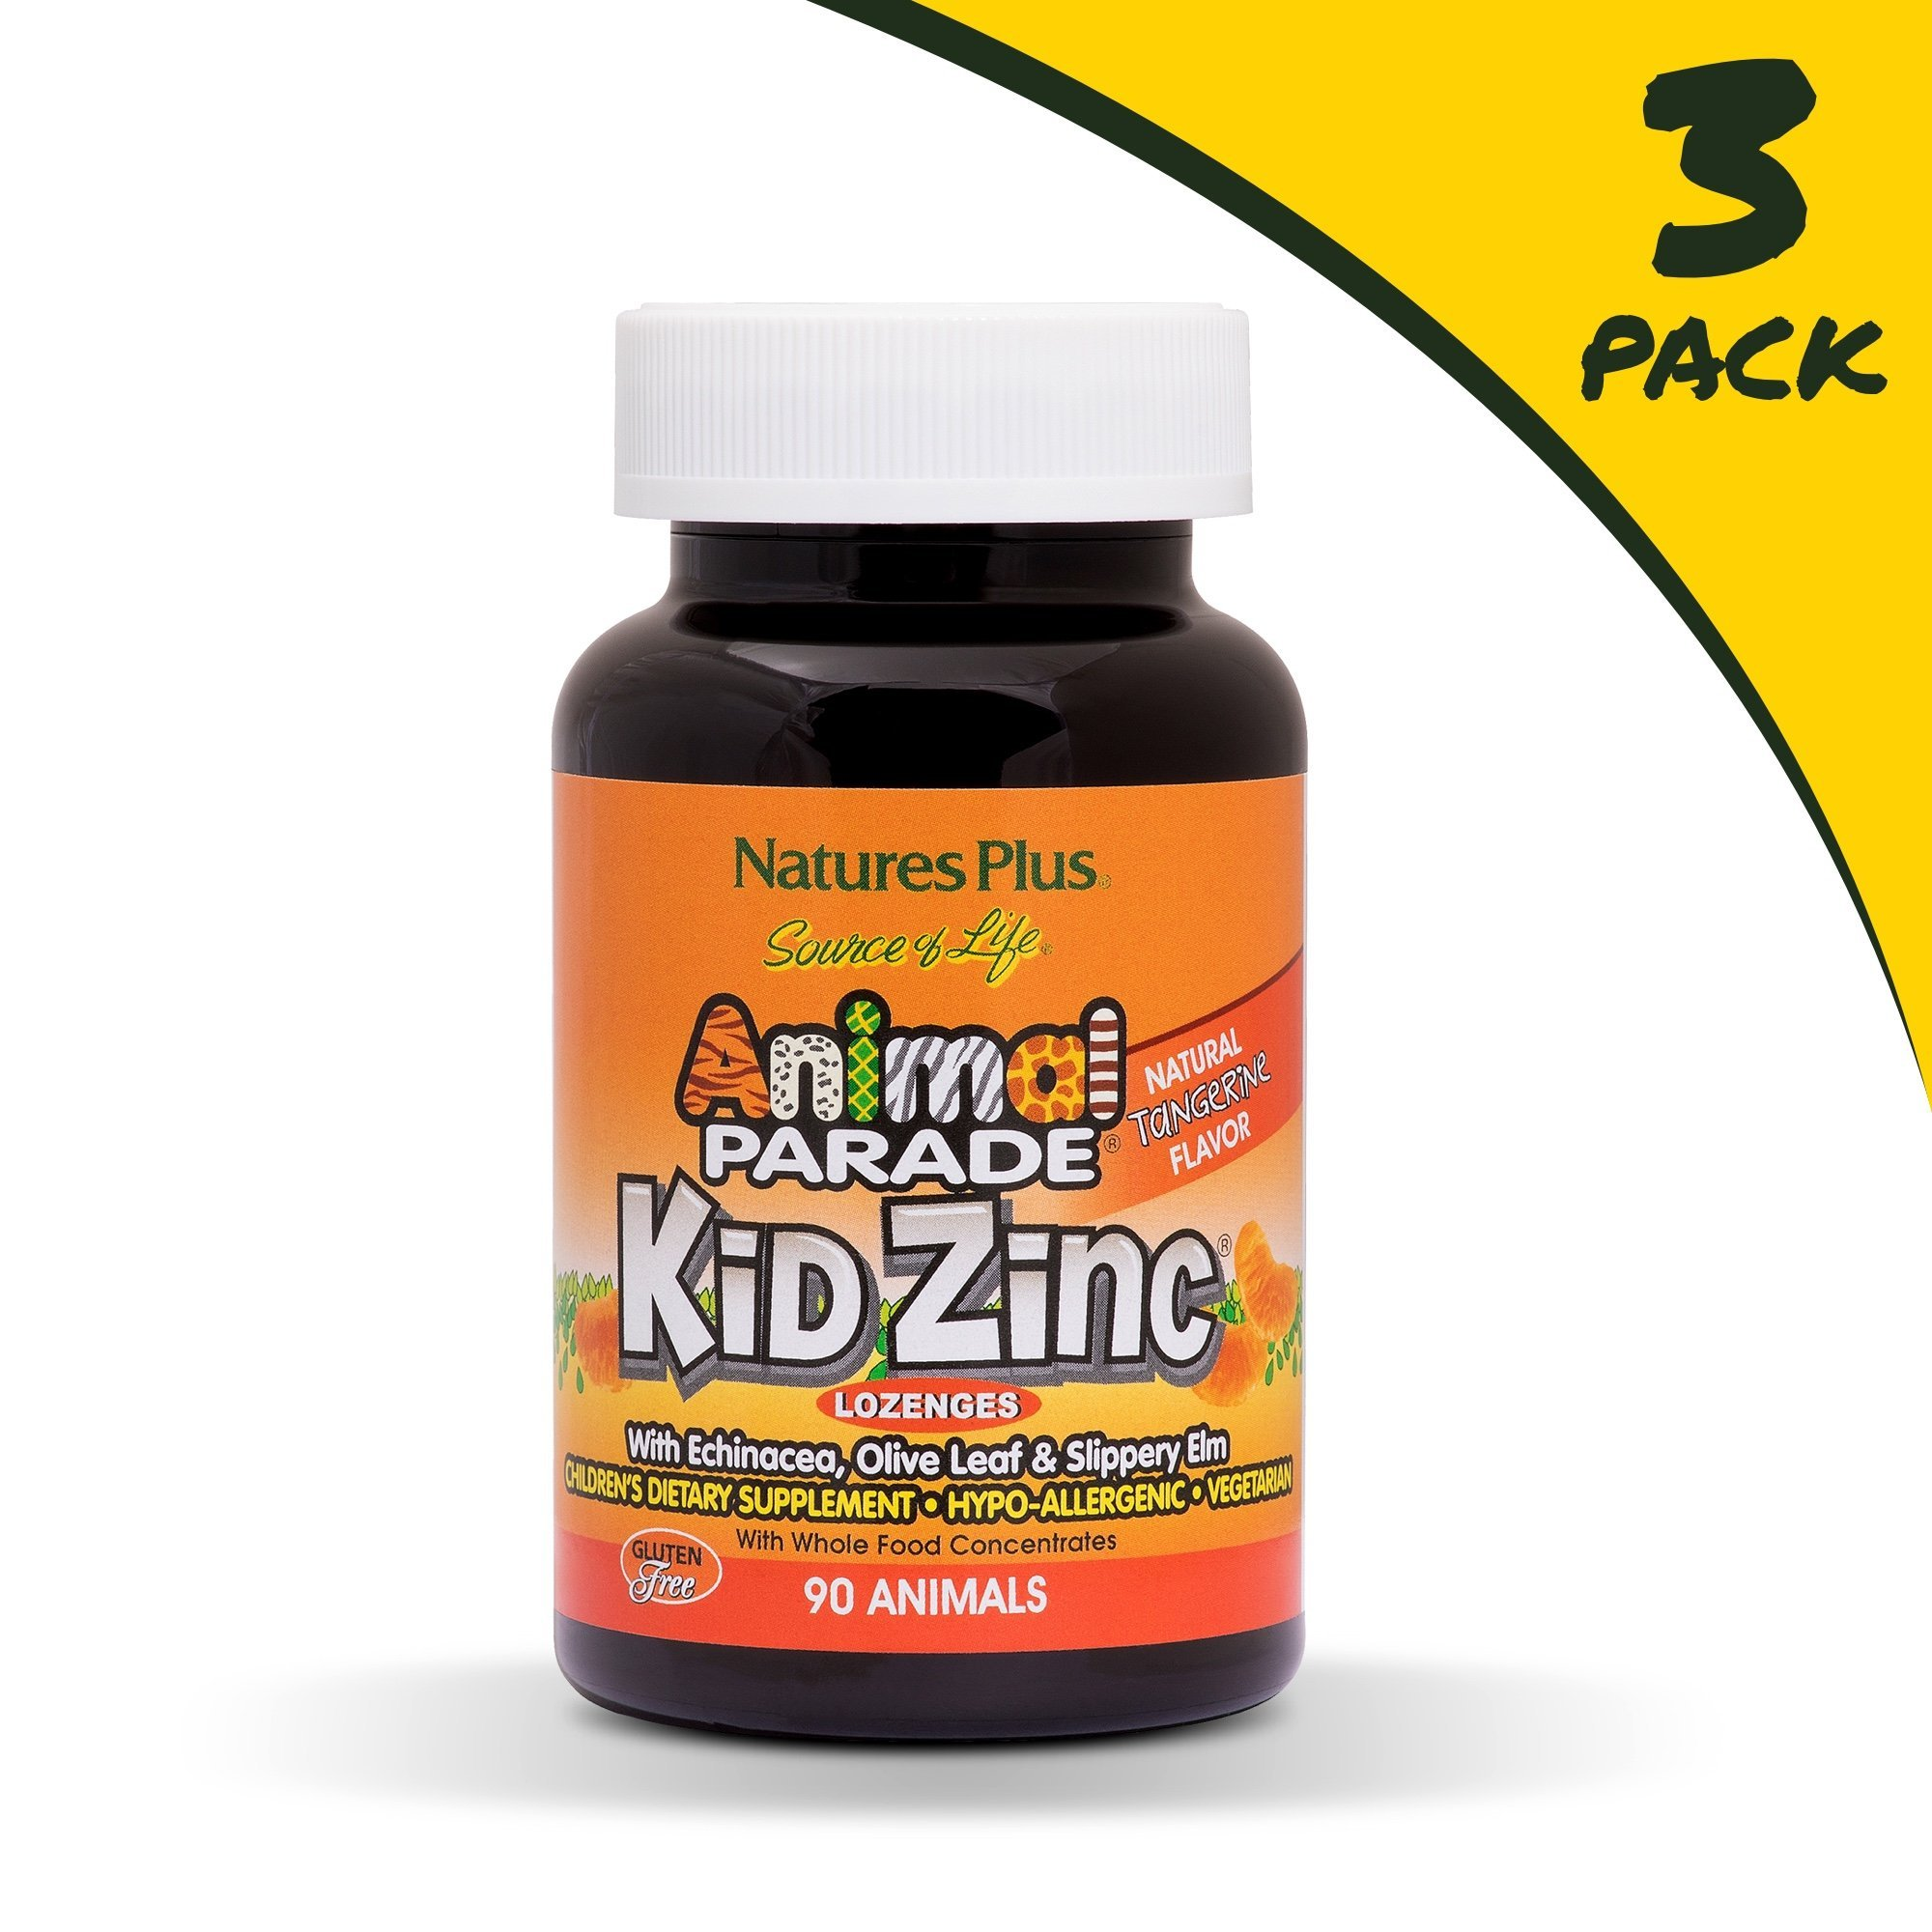 NaturesPlus Animal Parade Source of Life KidZinc Lozenges (3 Pack) - Tangerine Flavor - 90 Animal Shaped Tablets - Immune Support Supplement - Vegetarian, Gluten-Free - 270 Total Servings